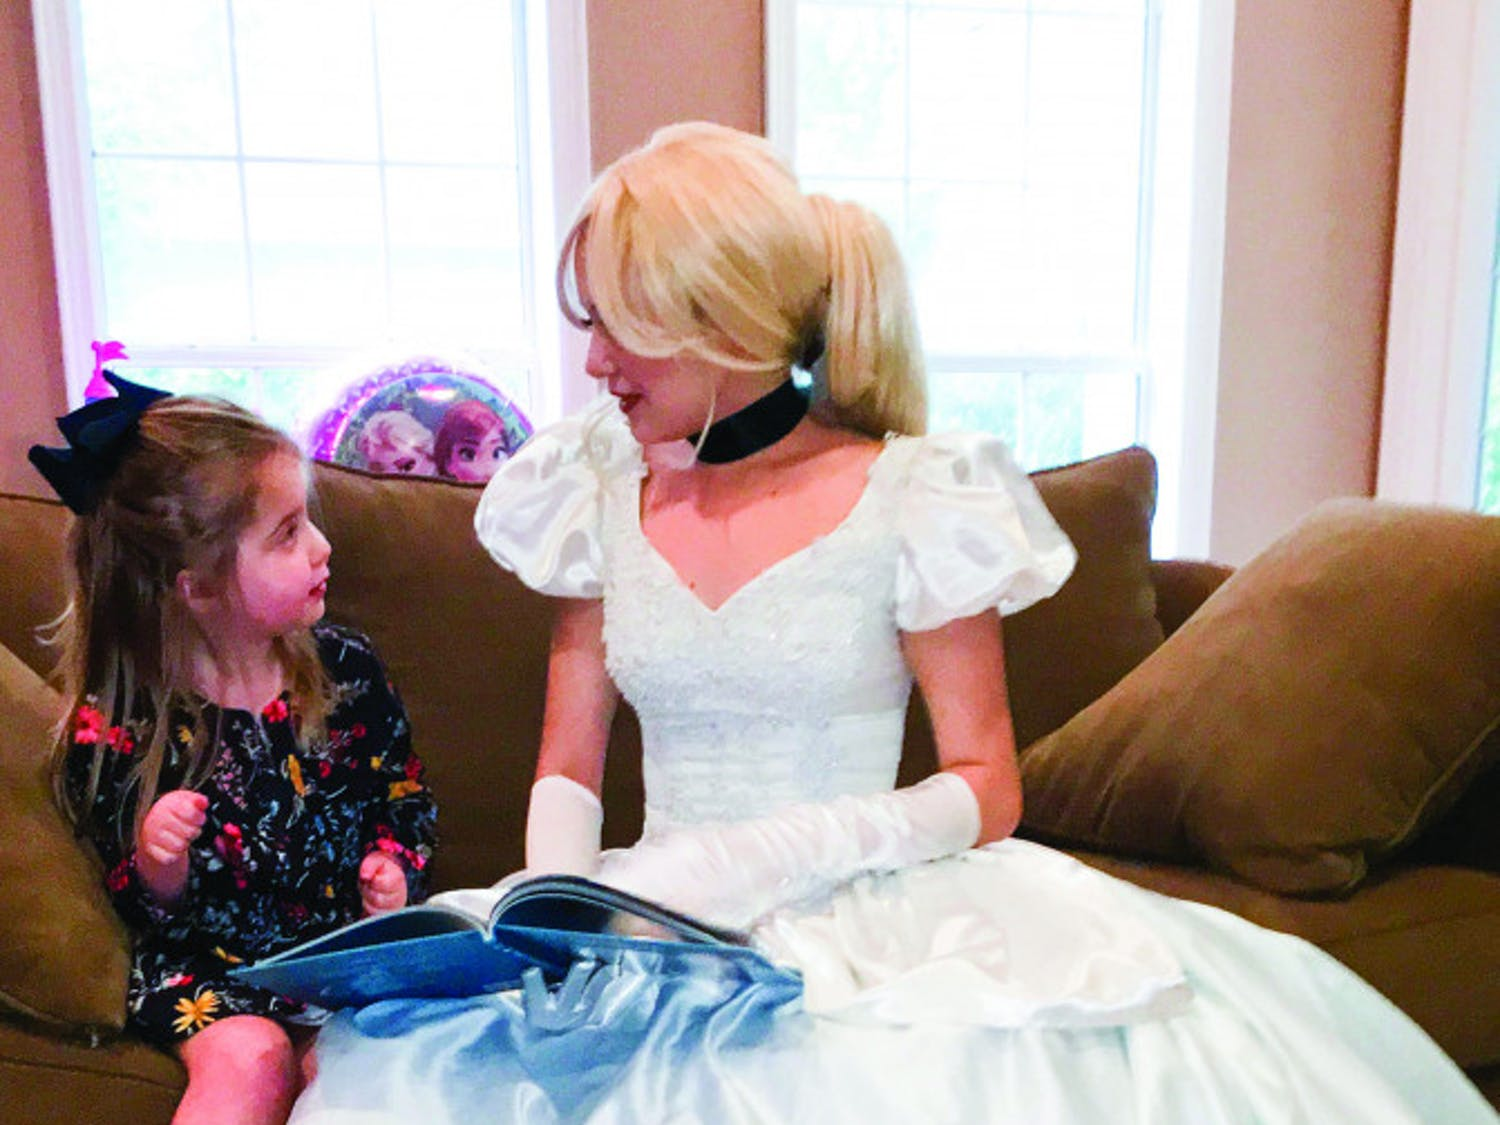 Dressed as Cinderella, Kailyn Allen, a 22-year-old UF law student, reads a book to 4-year-old Phoebe Dooley. Dooley was diagnosed with a terminal brain tumor in March 2016.